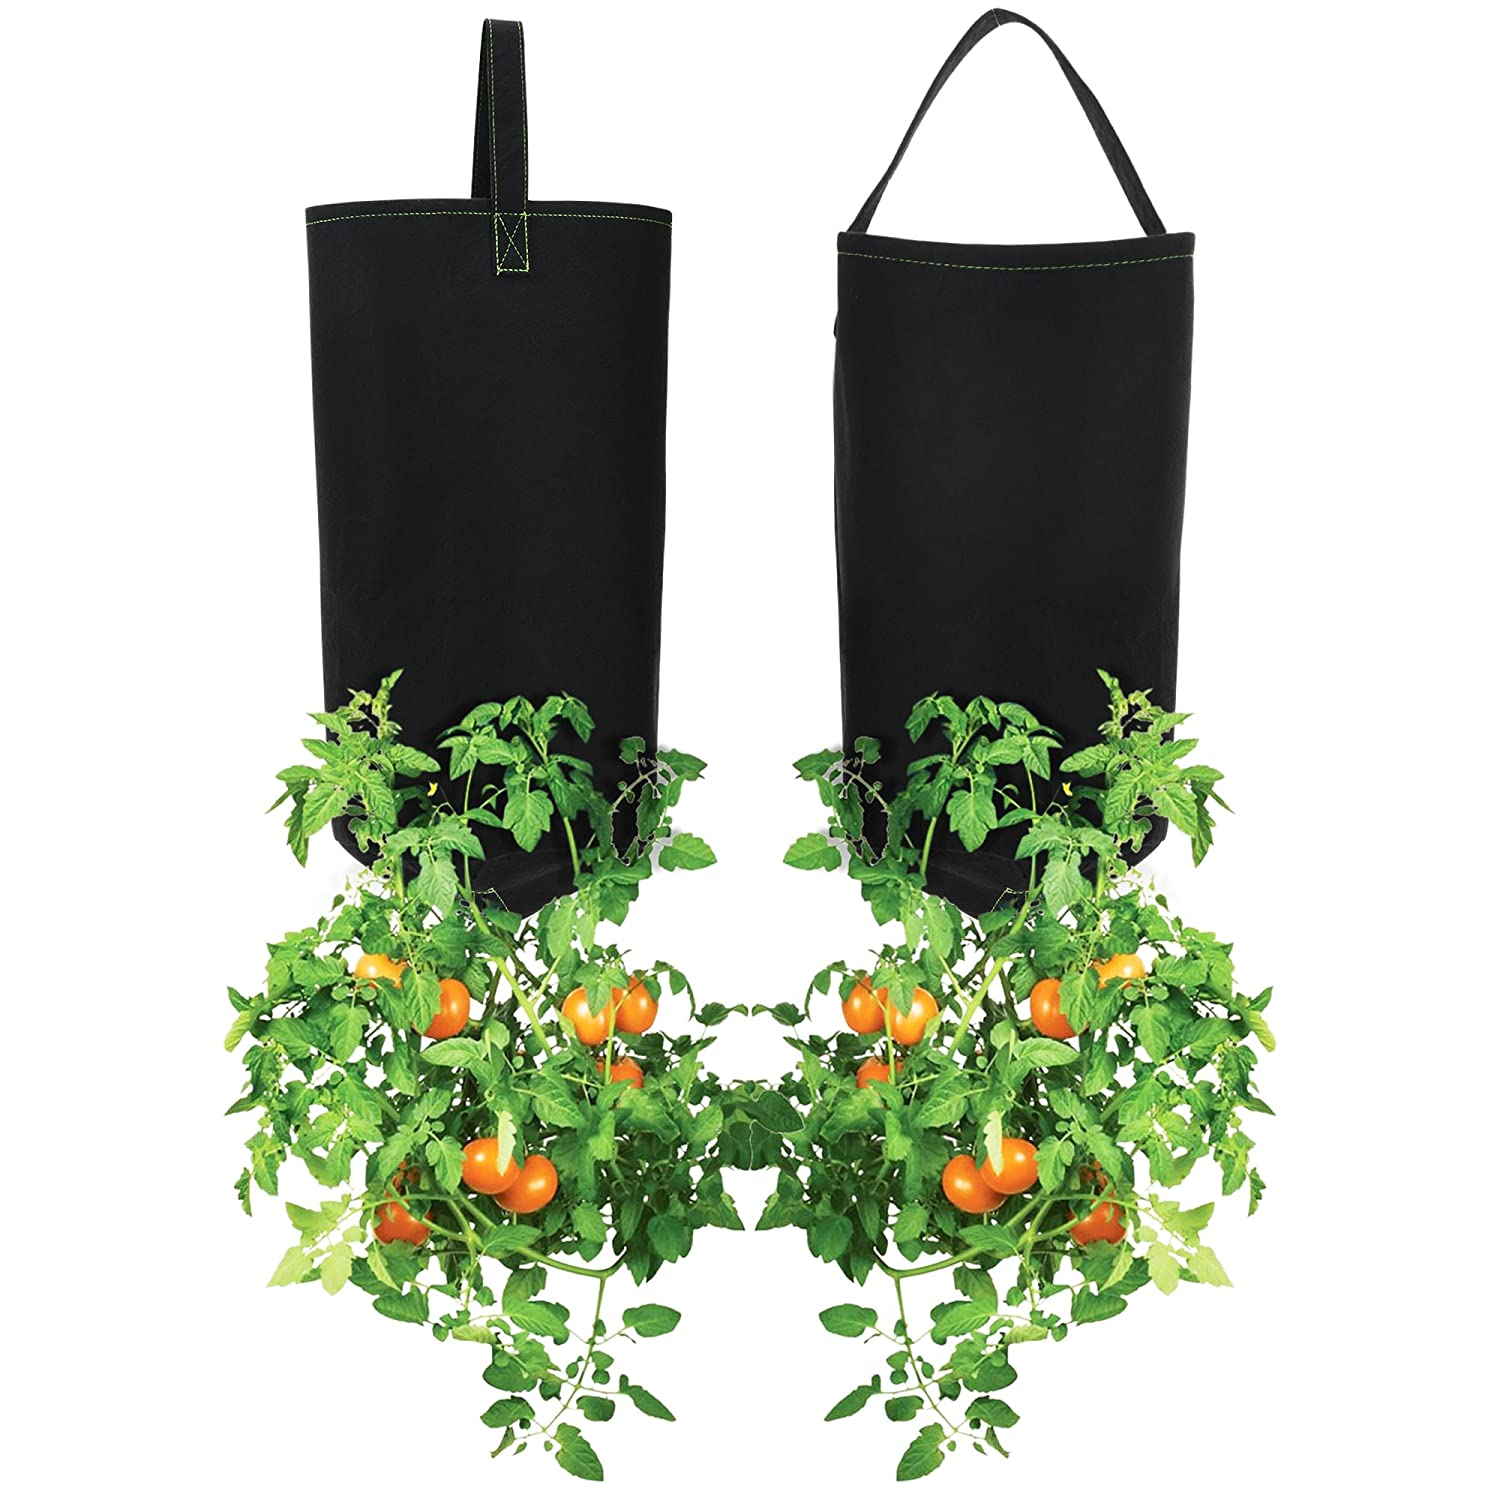 Pri Gardens Upside Down Tomato Planter, (2- Pack) | Hooks Included (Requires Fertilizer, not Included)